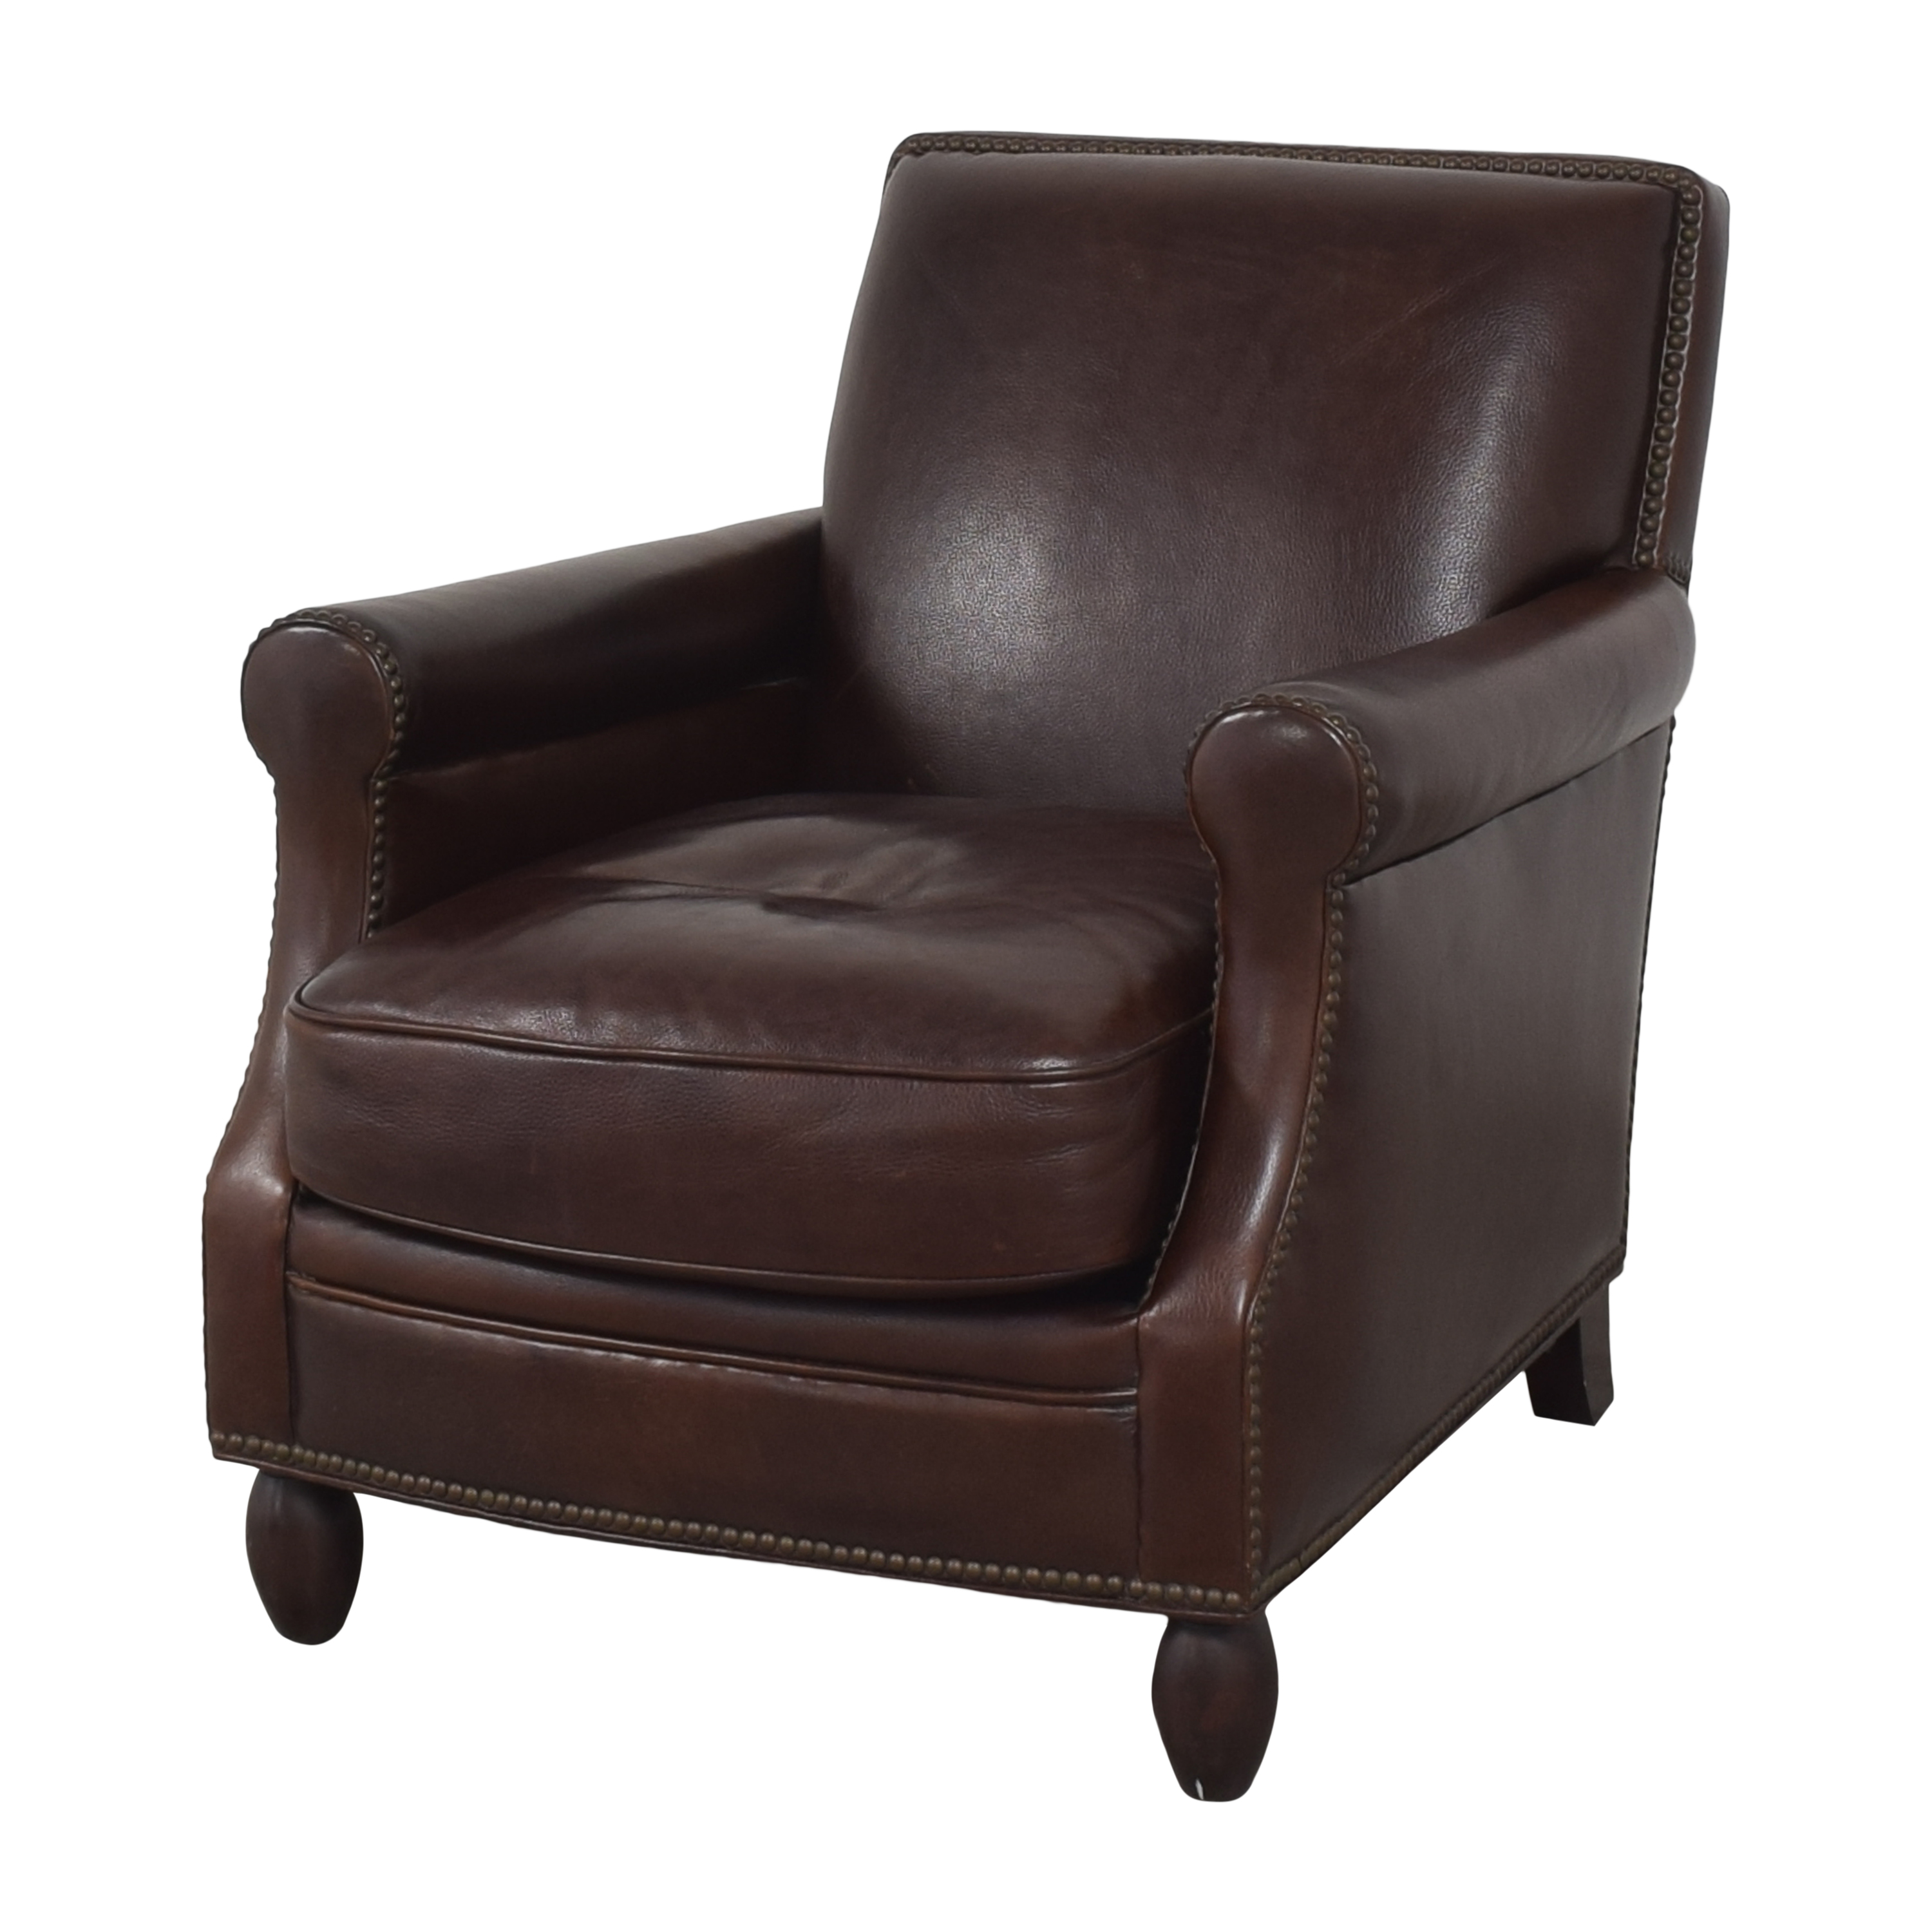 Bradington-Young Bradington-Young Roll Arm Nailhead Accent Chair used